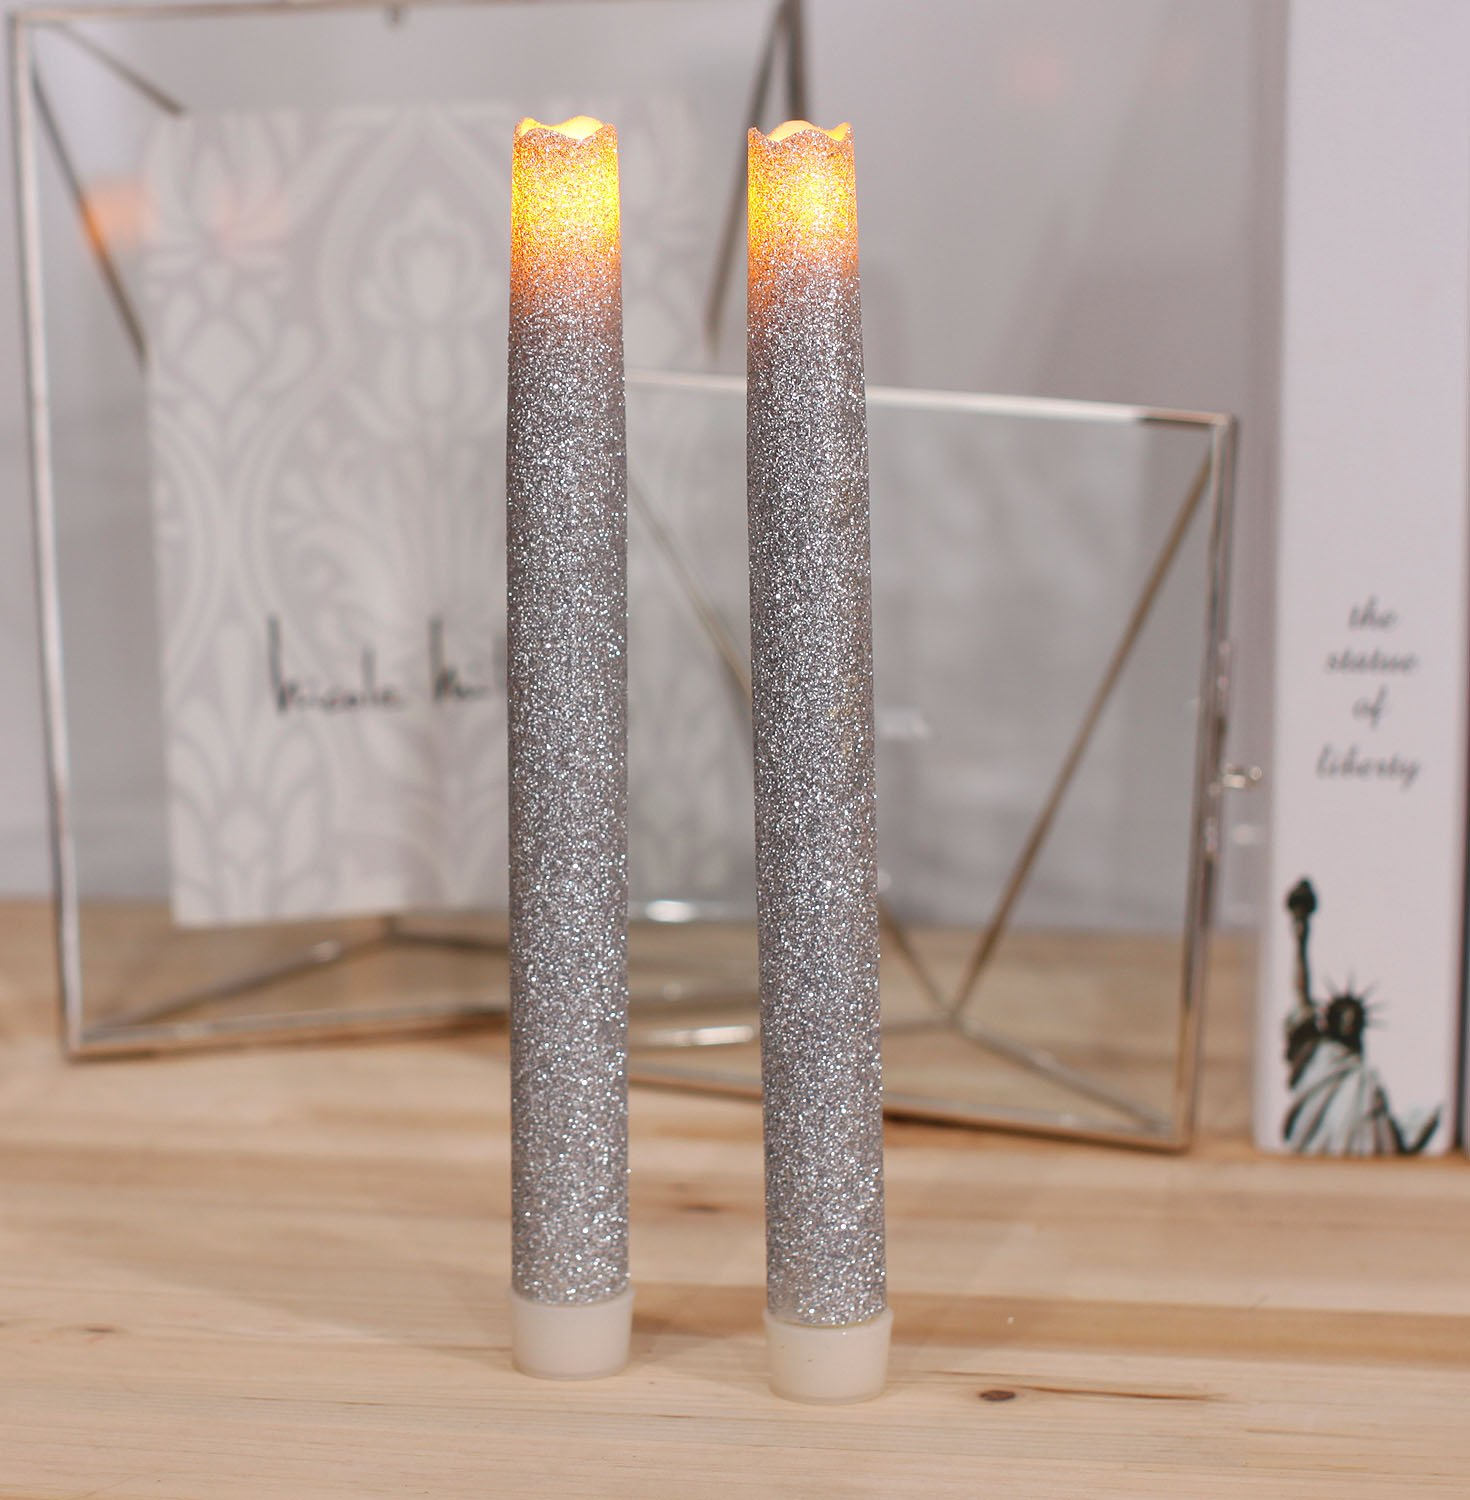 9 Inches Melted Led Taper Candles with Timer,Battery Operated,with Silvery Glitter,Pack of 2